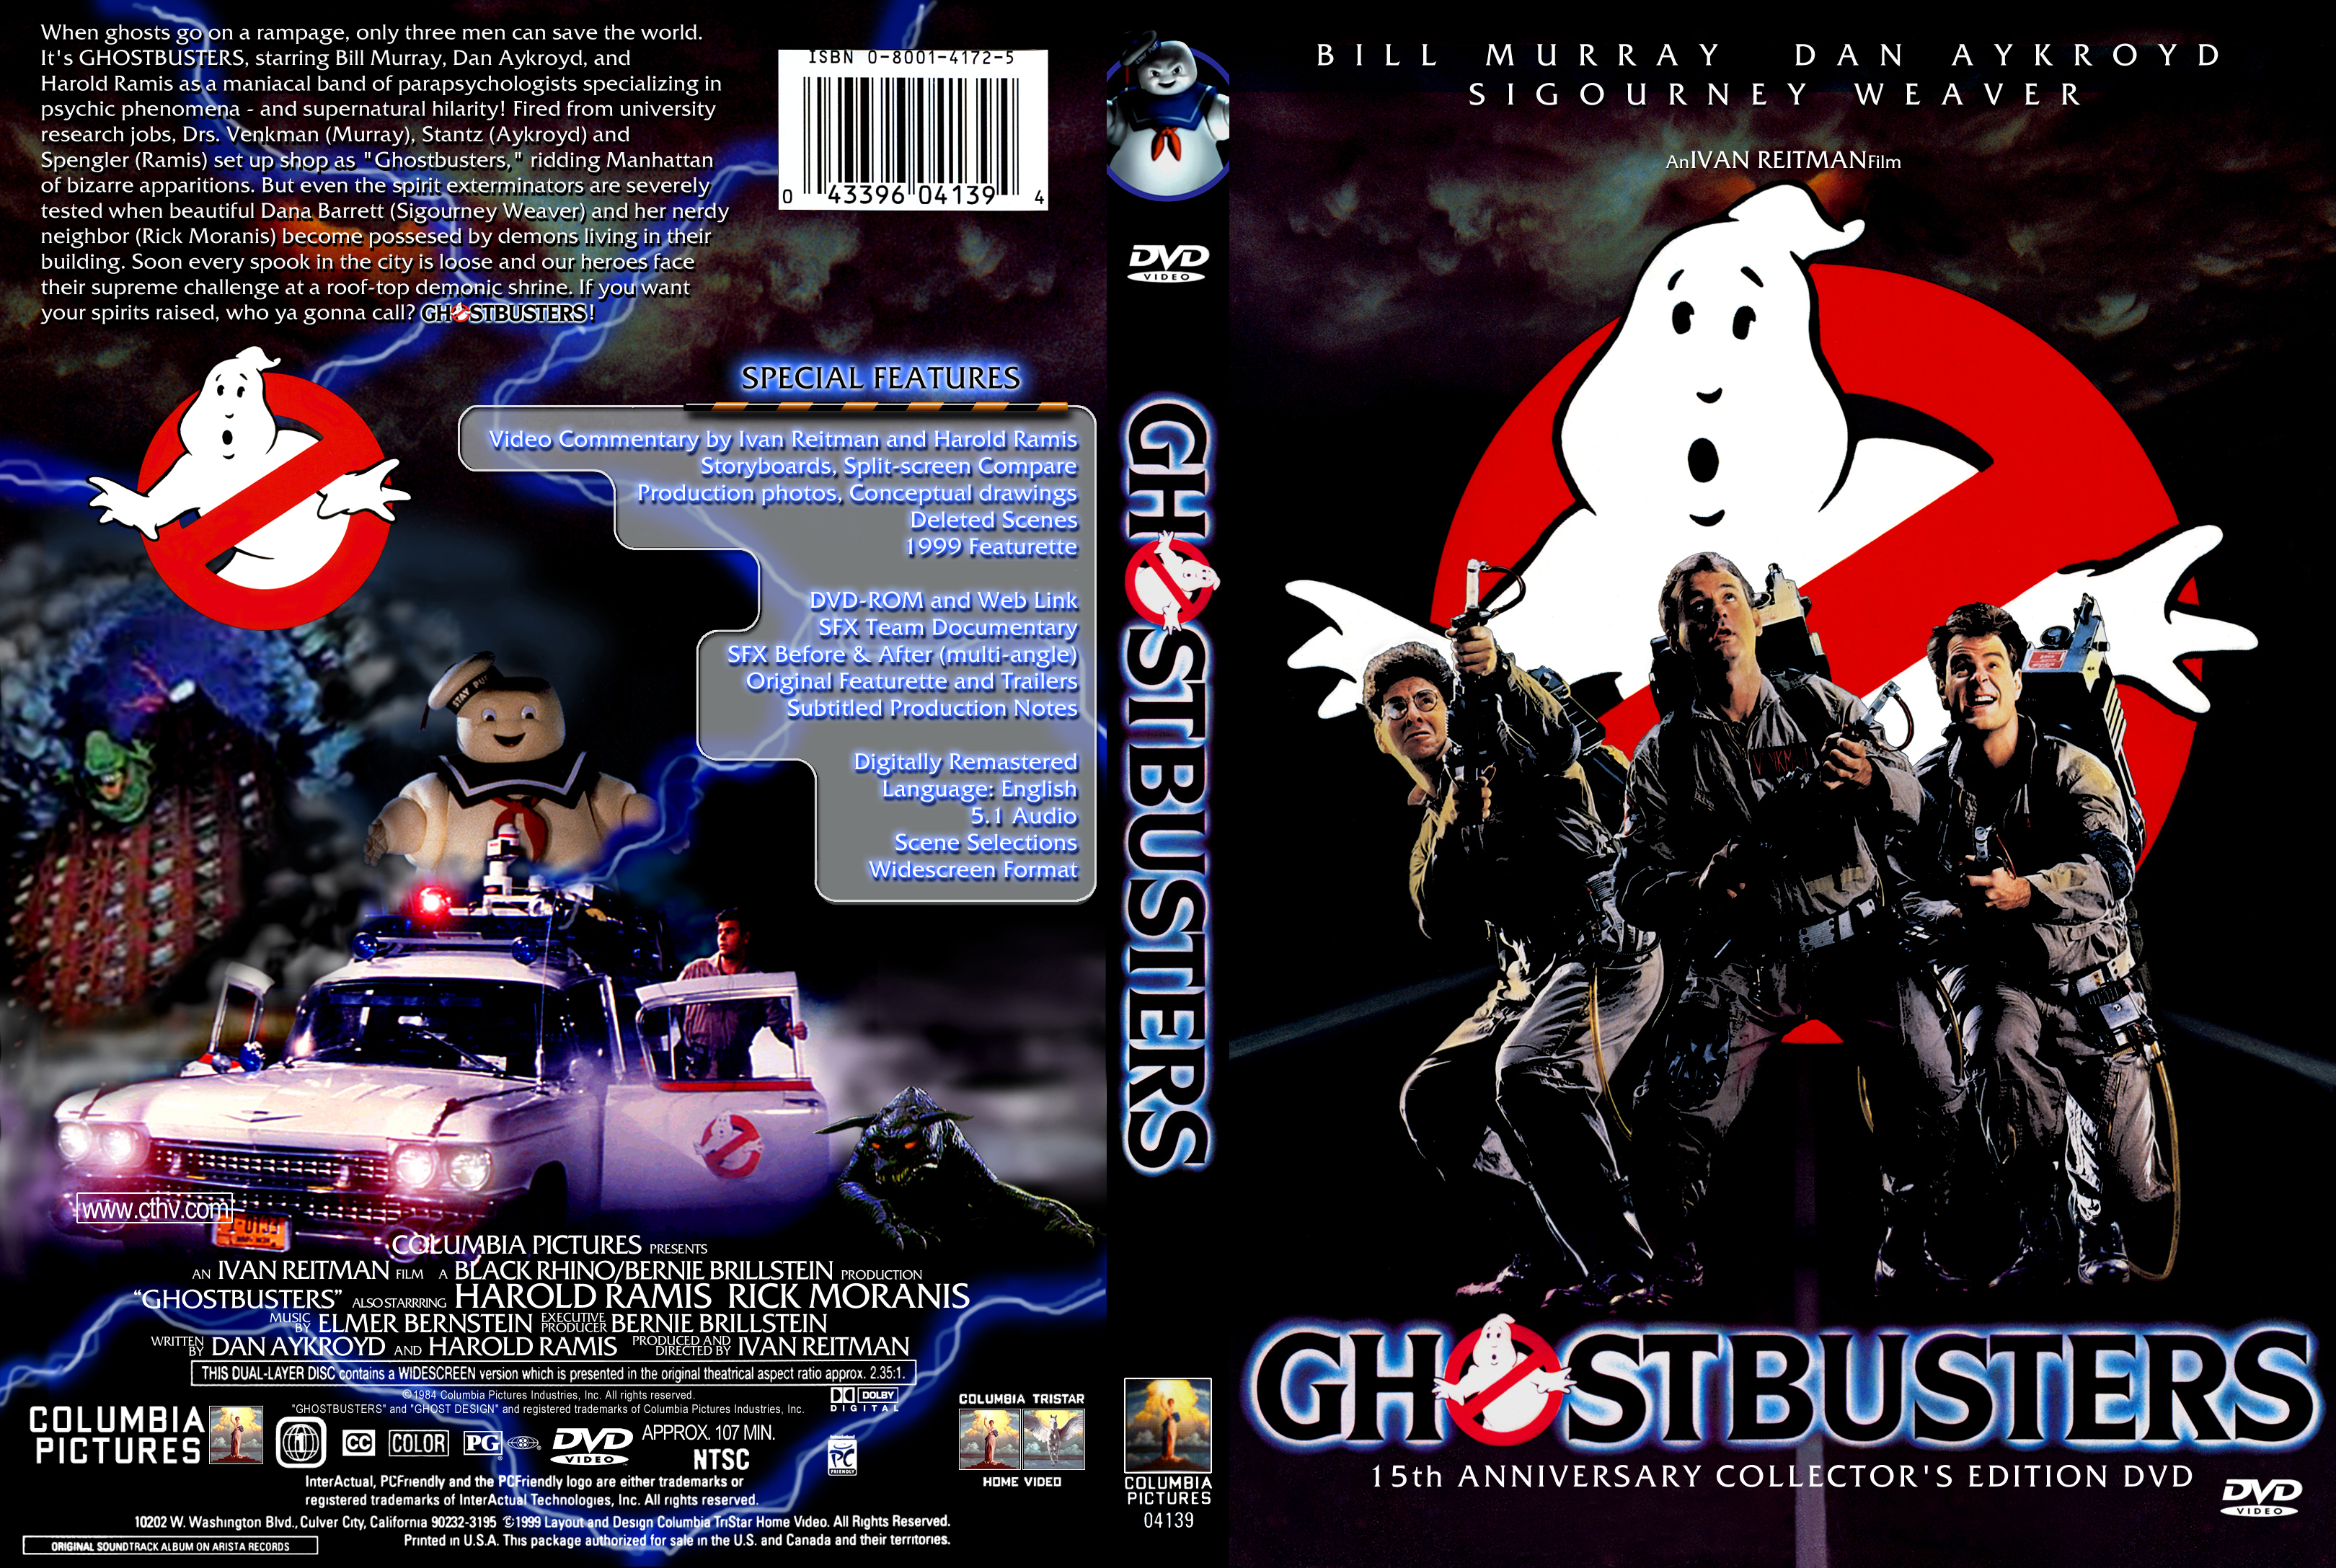 Ghostbusters DVD Cover A by YoshioKun13 on DeviantArt